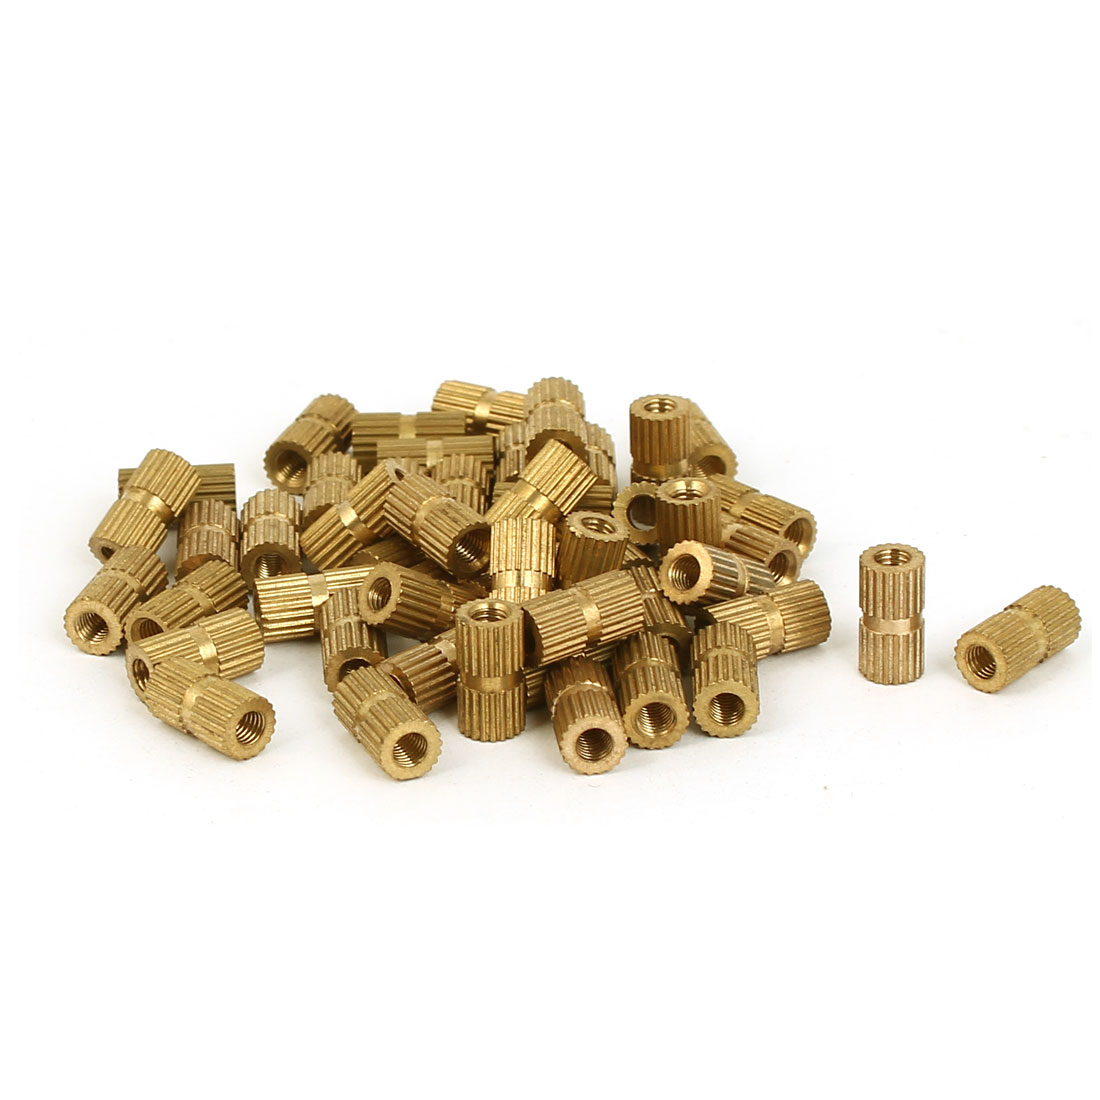 M3 x 5mm x 10mm Female Threaded Insert Embedded Knurled Nuts Gold Tone 50 Pcs